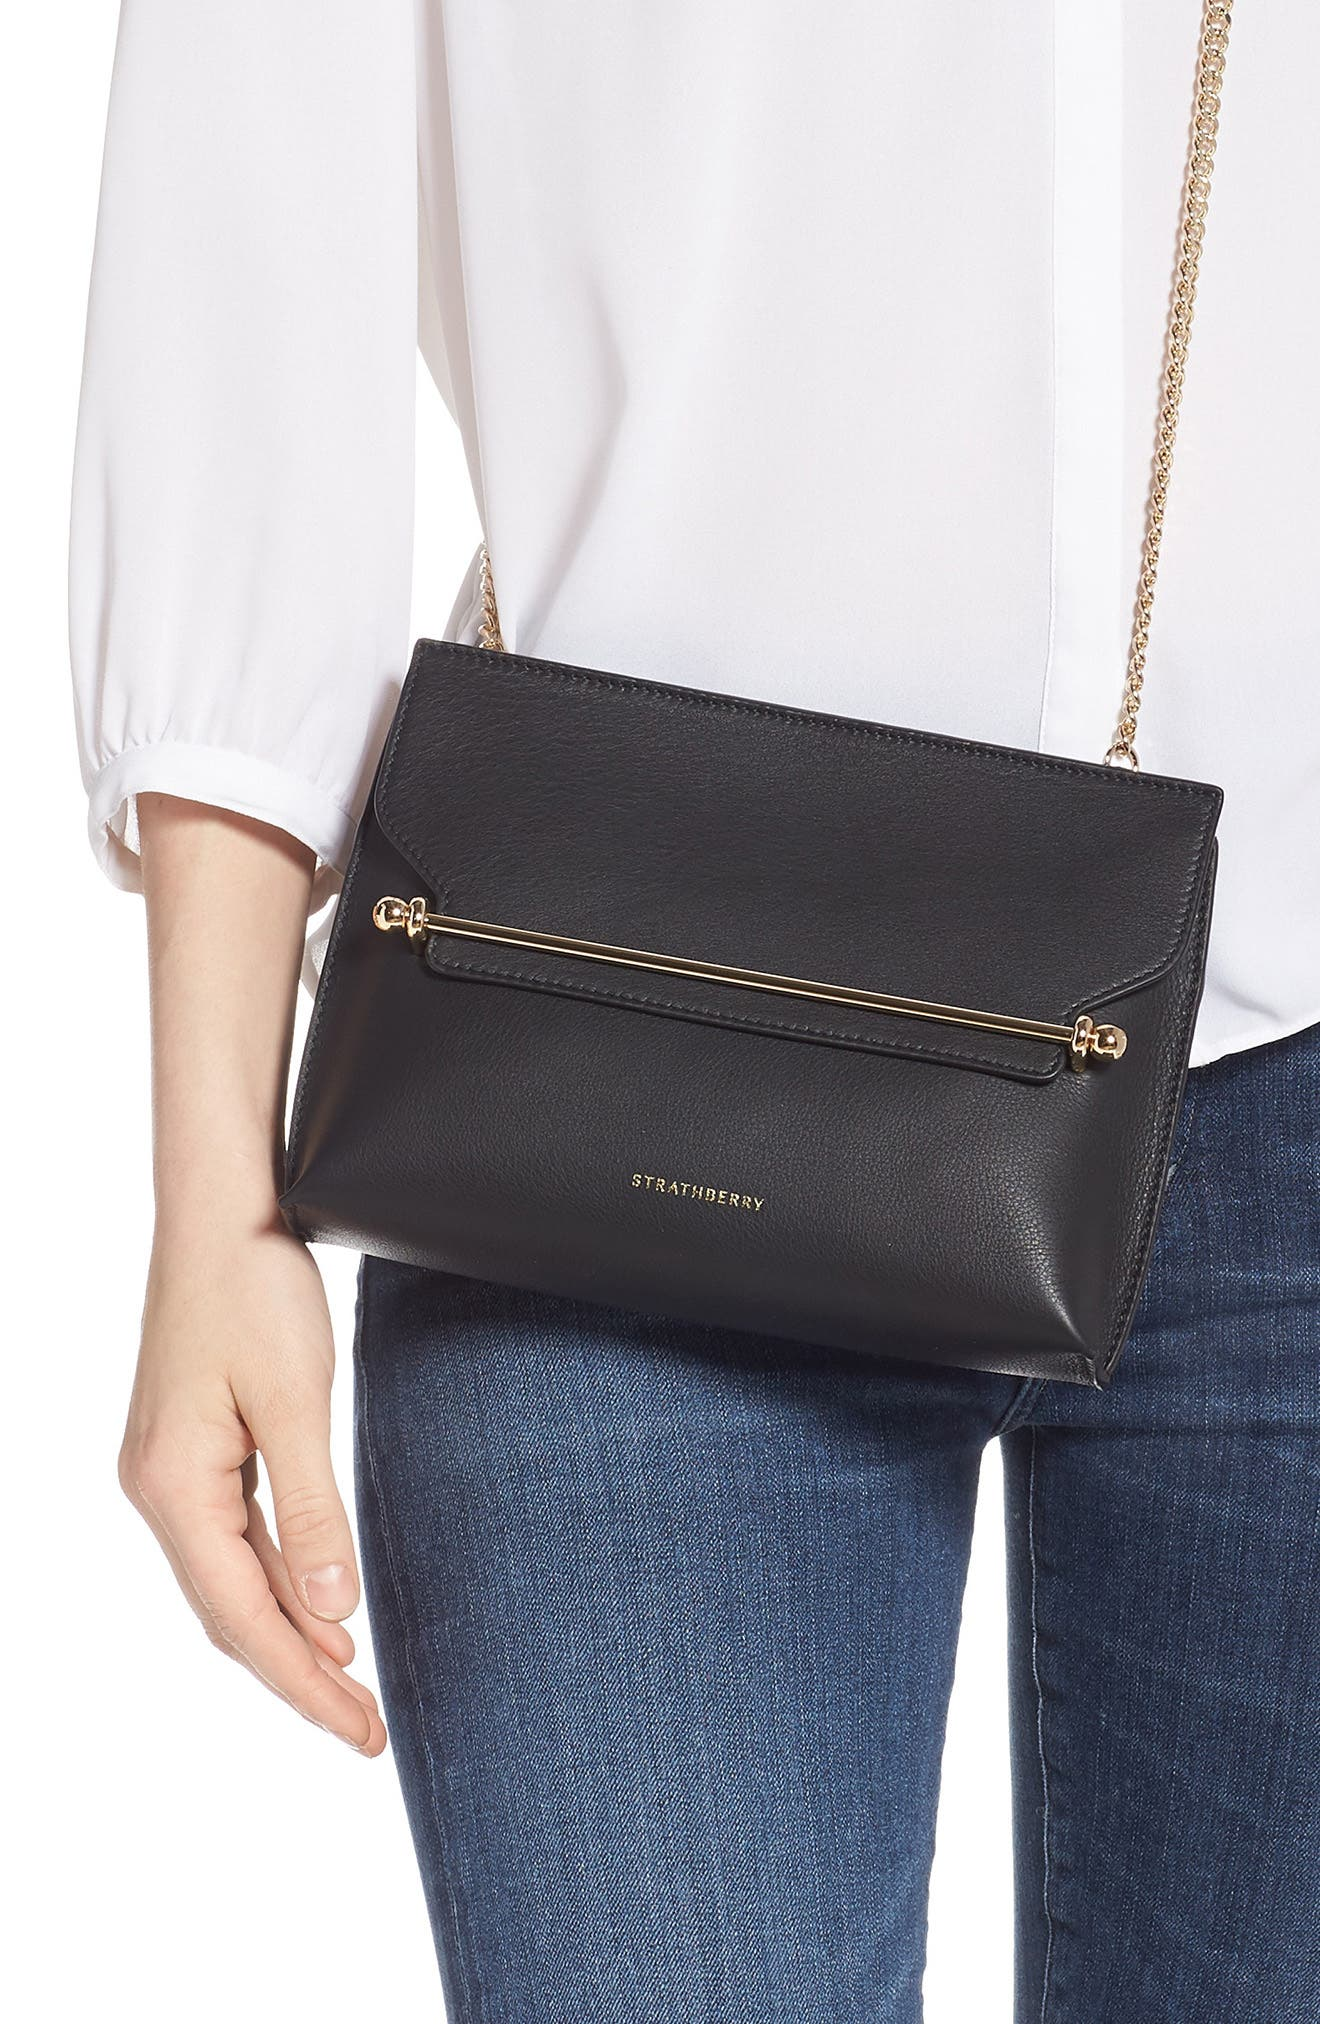 STRATHBERRY, East/West Stylist Calfskin Leather Clutch, Alternate thumbnail 2, color, BLACK